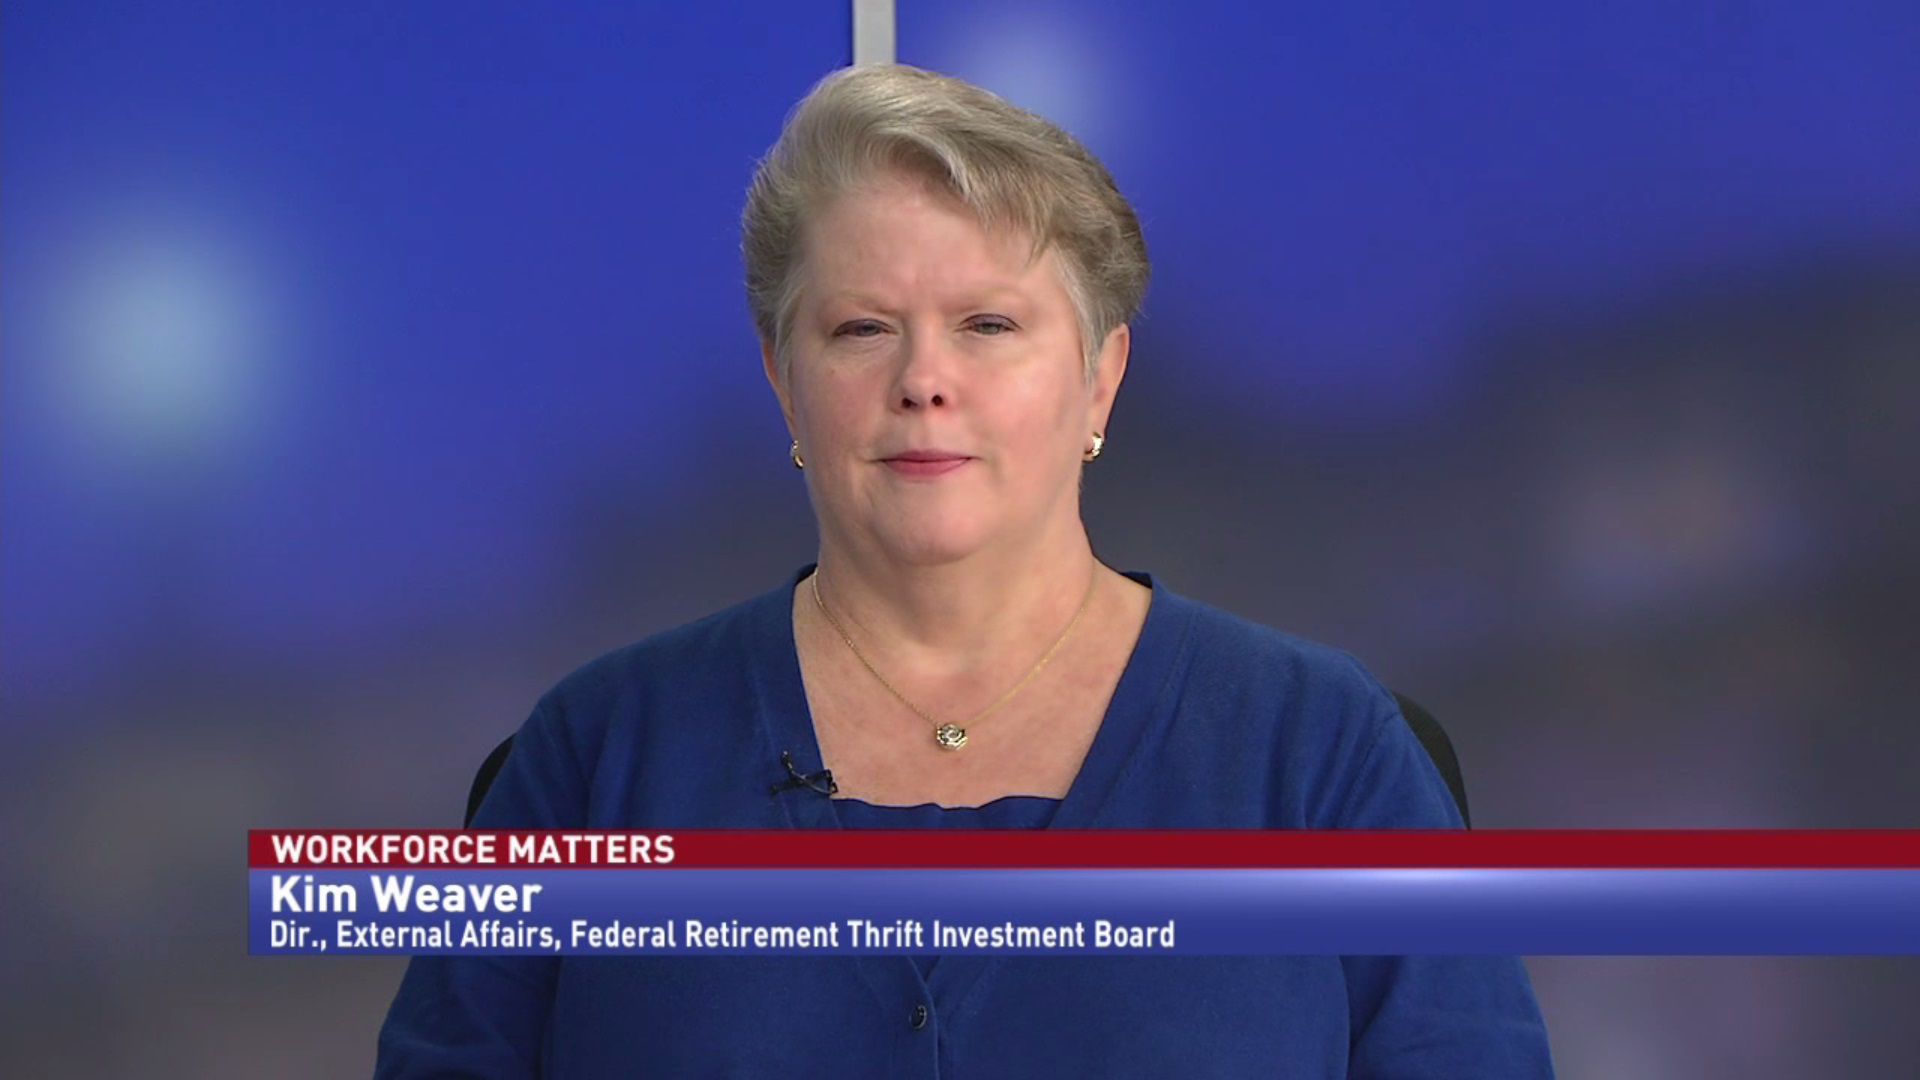 Federal Retirement Thrift Investment Board update